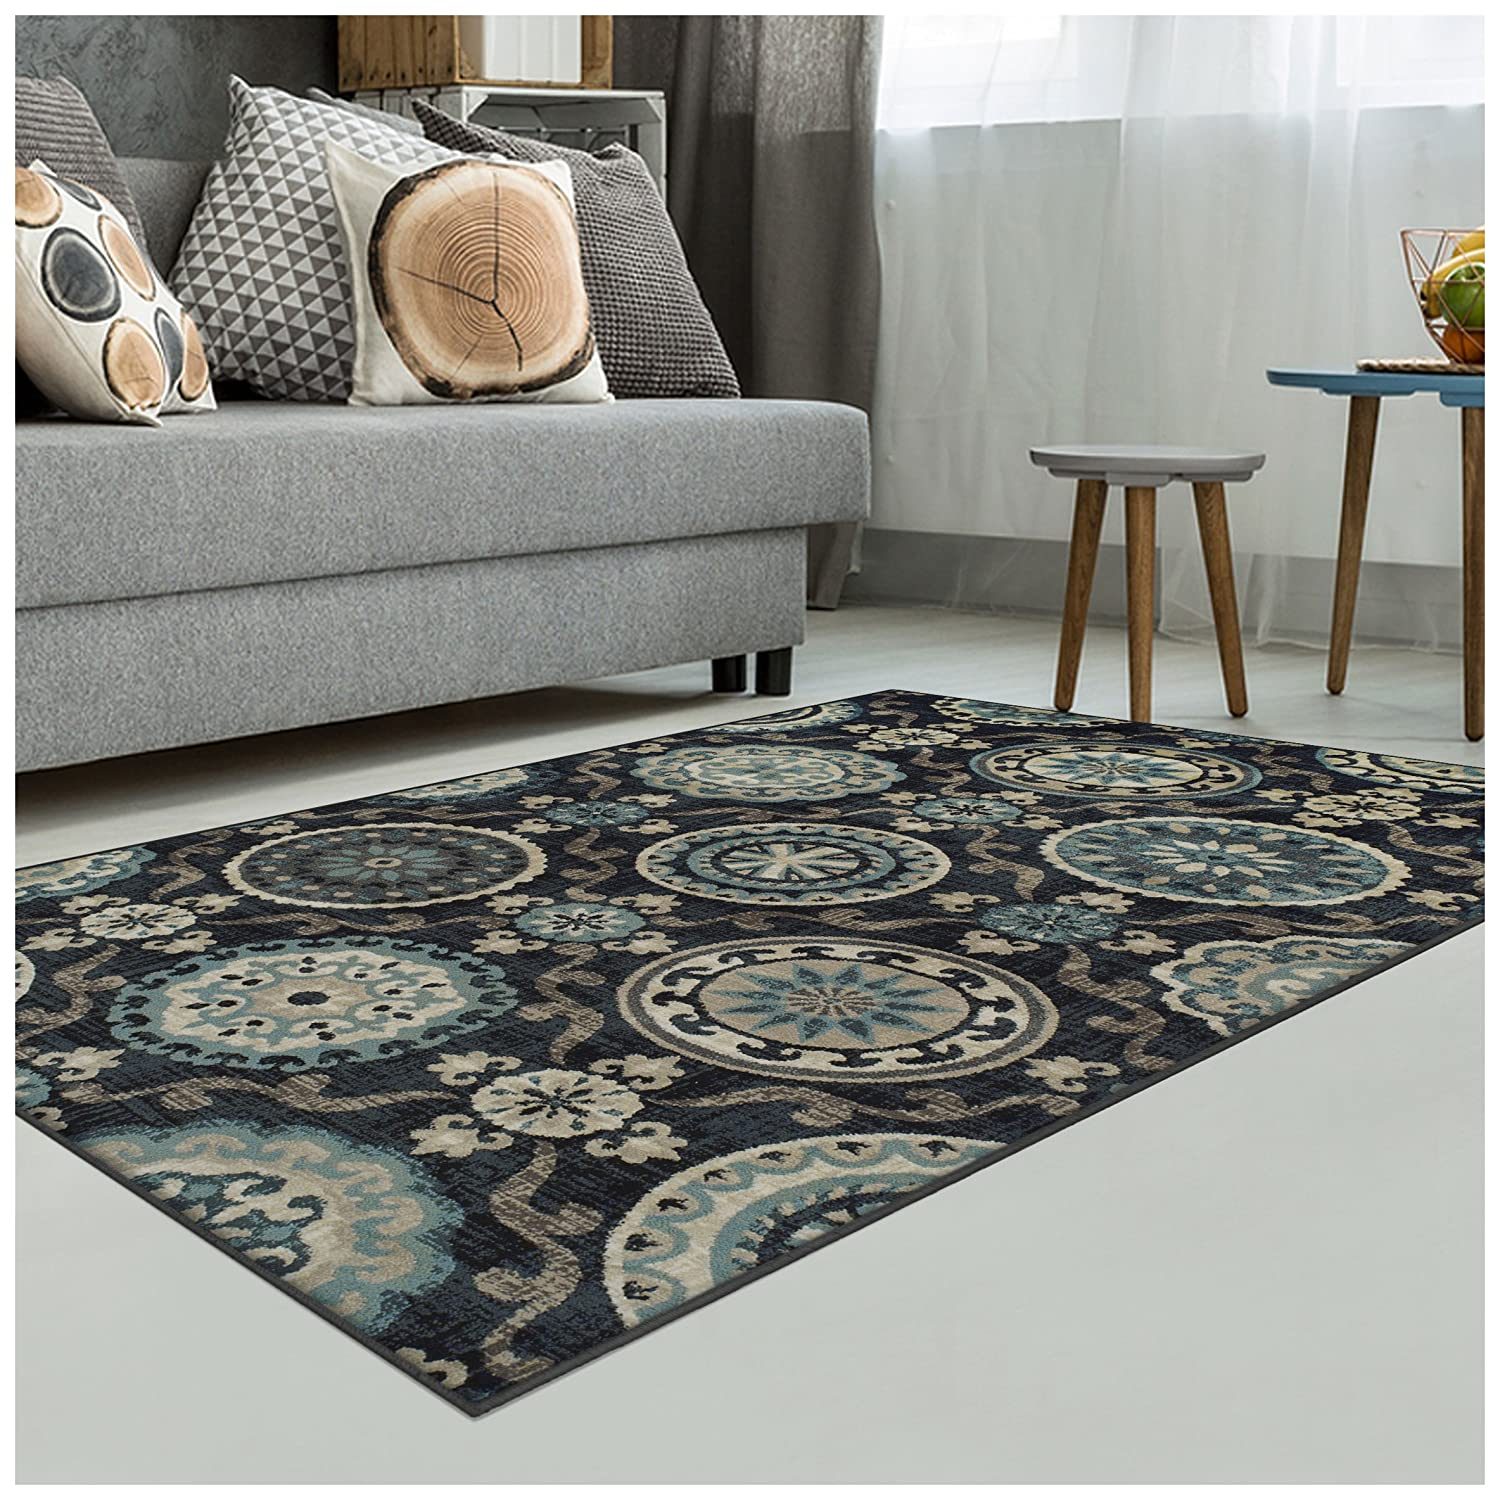 Cream Superior Area Rug 2 x 3 10mm Pile Height with Jute Backing Woven Fashionable and Affordable Abner  Collection